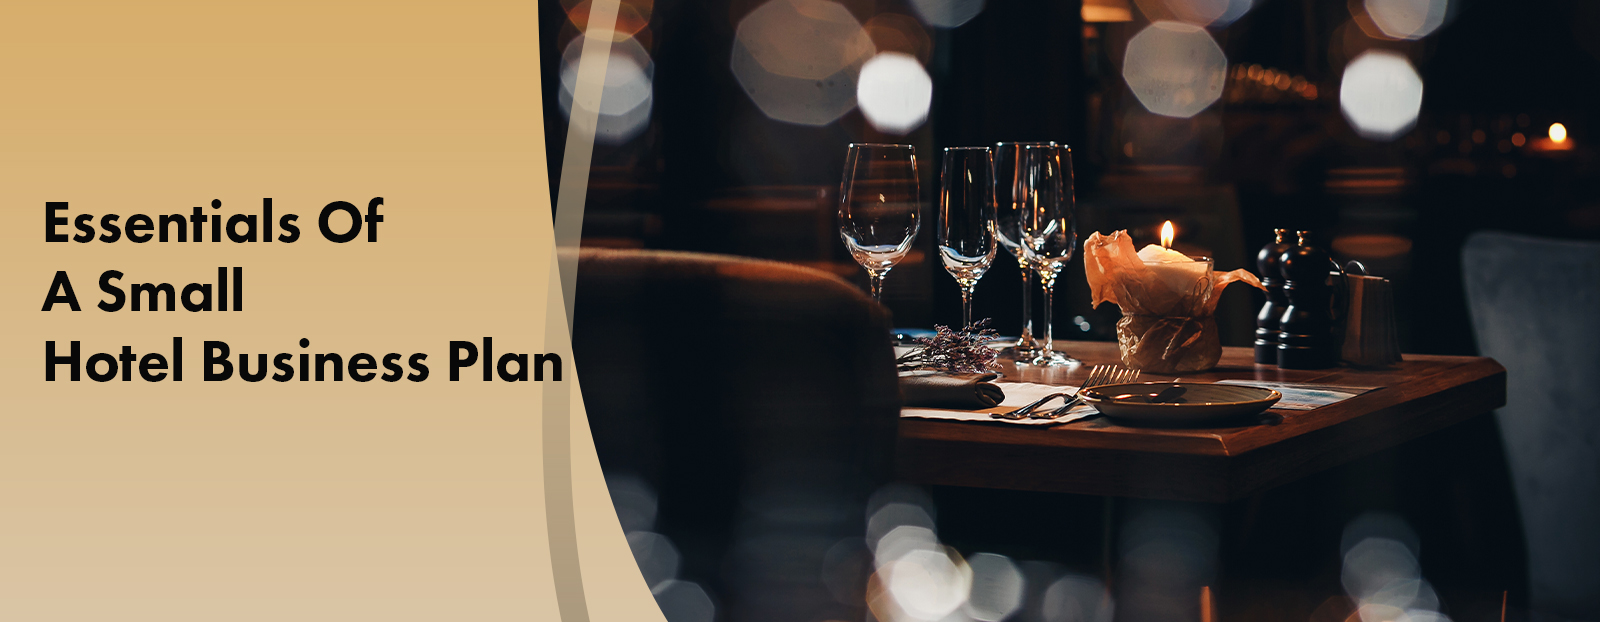 Essentials Of A Small Hotel Business Plan